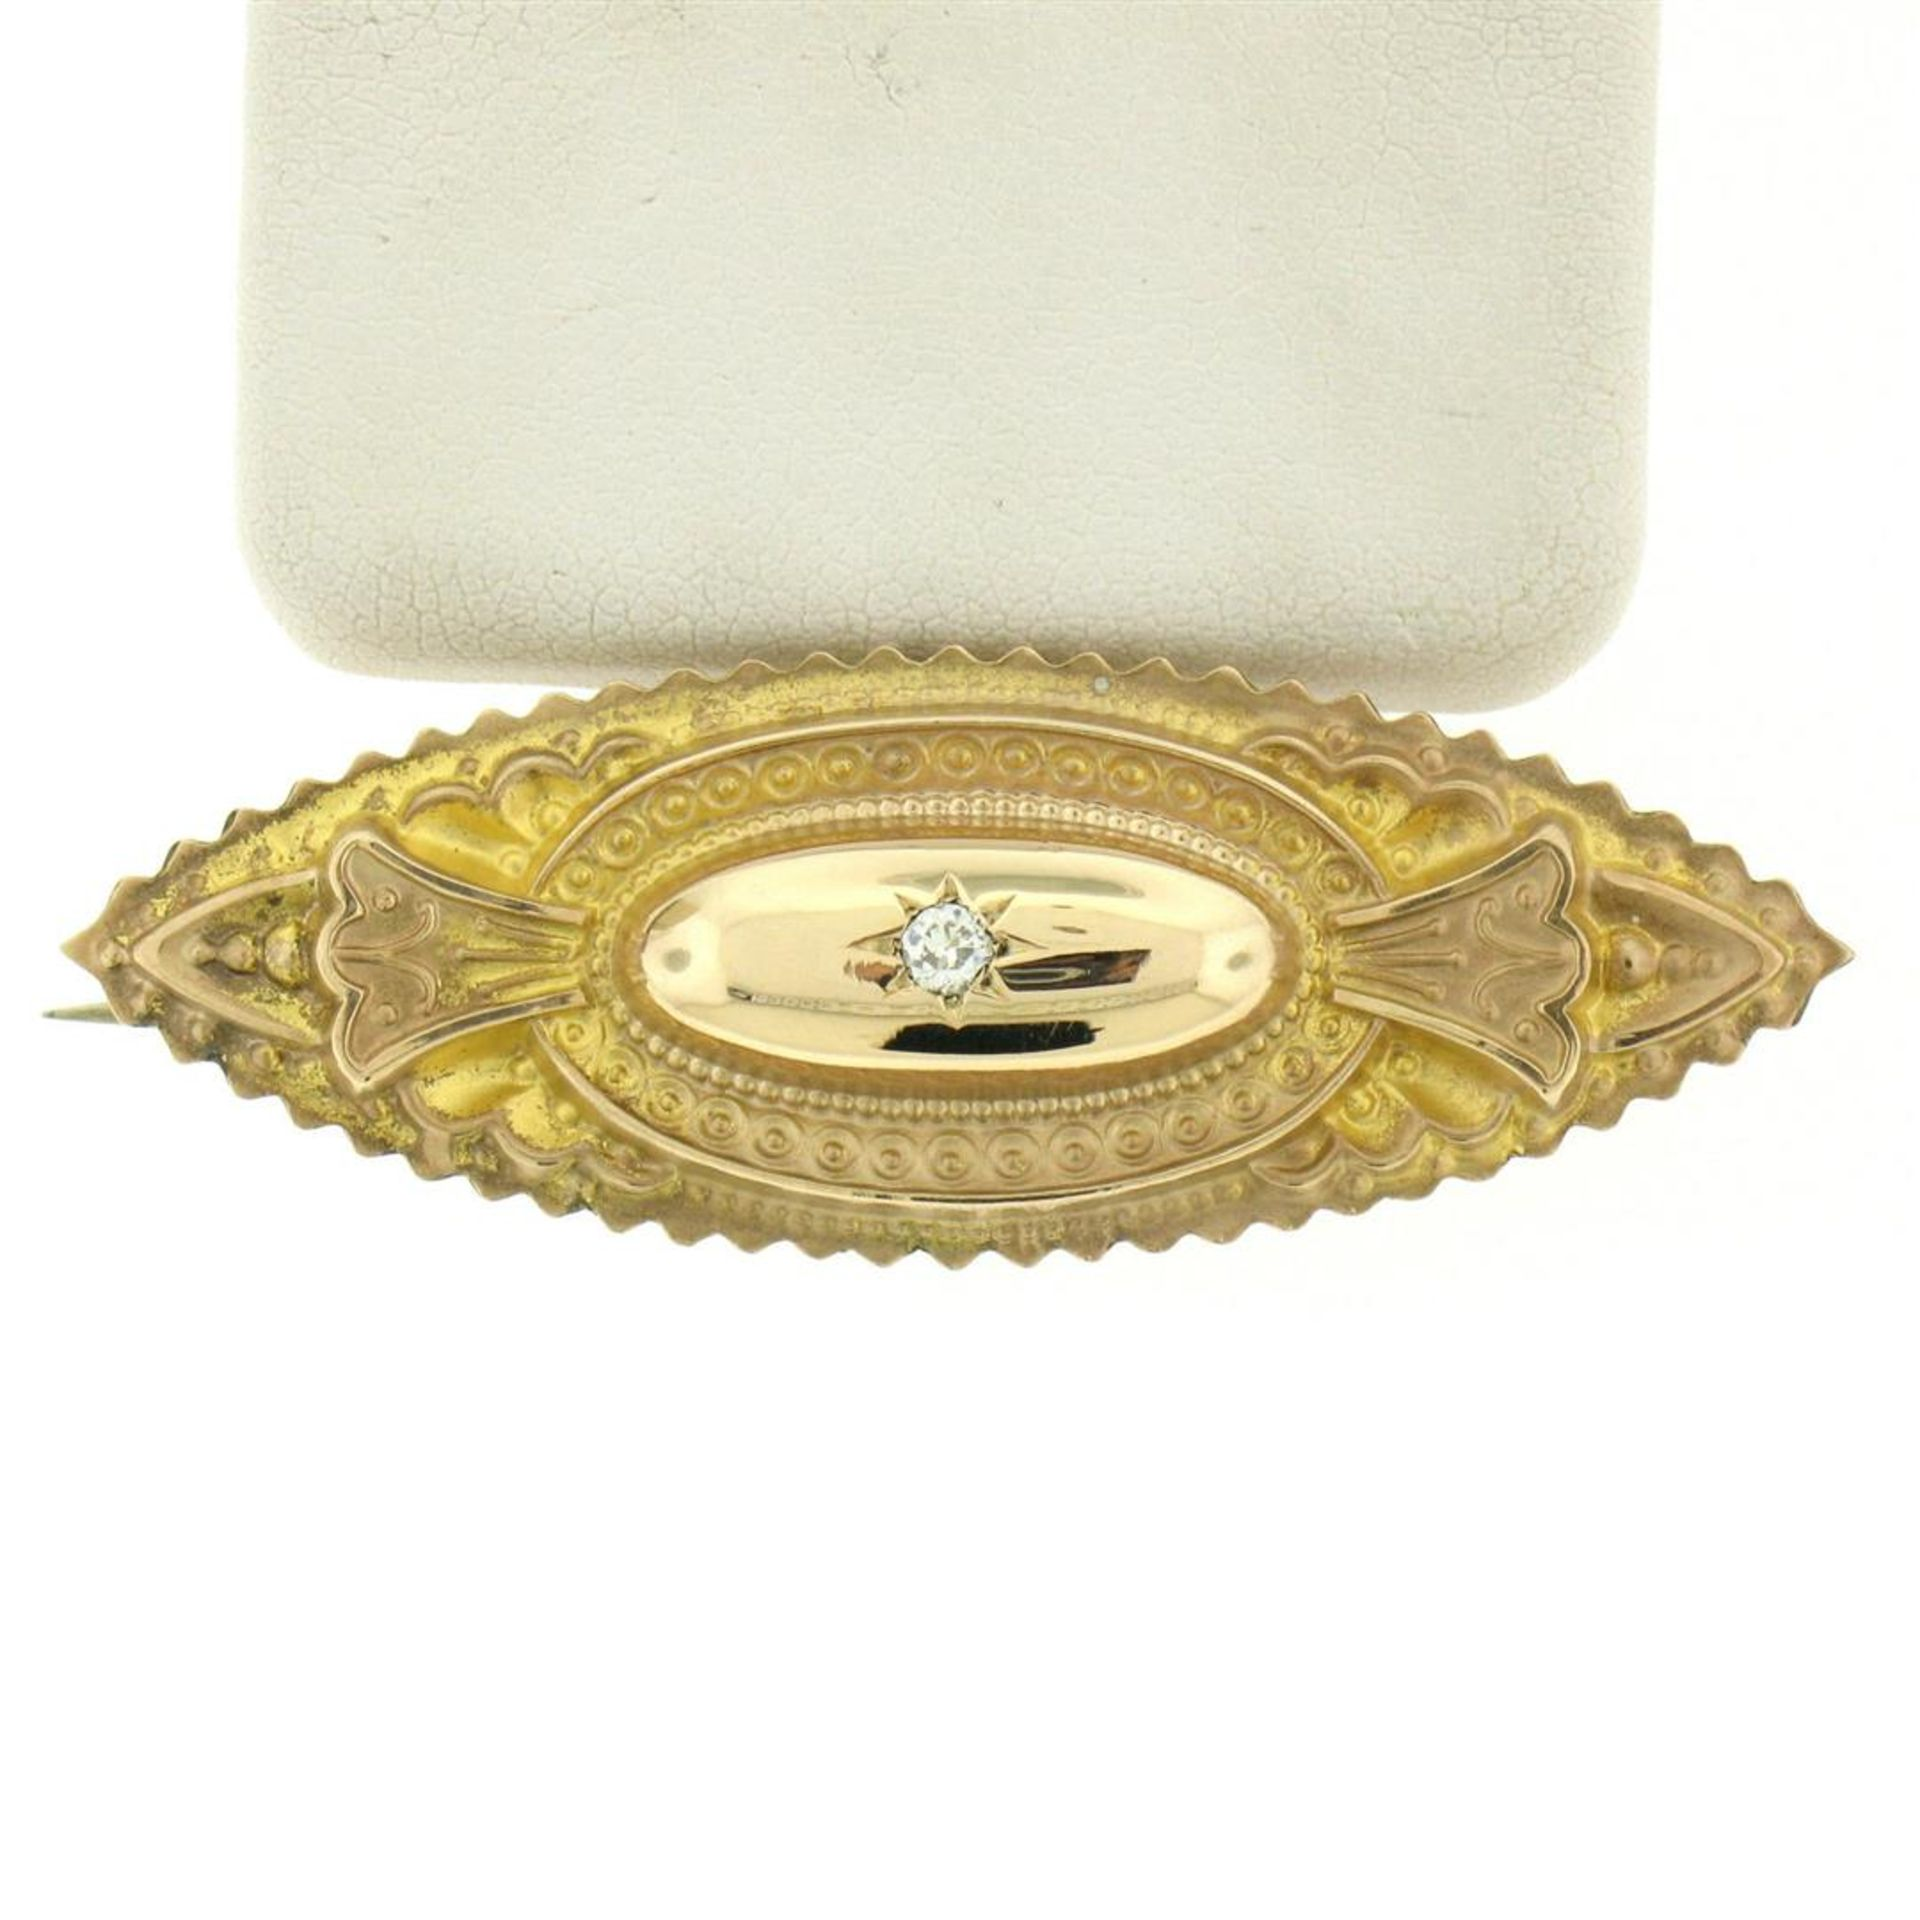 9k Yellow Gold .10 ctw Diamond Marquise Shaped Etched Brooch Pin - Image 3 of 9